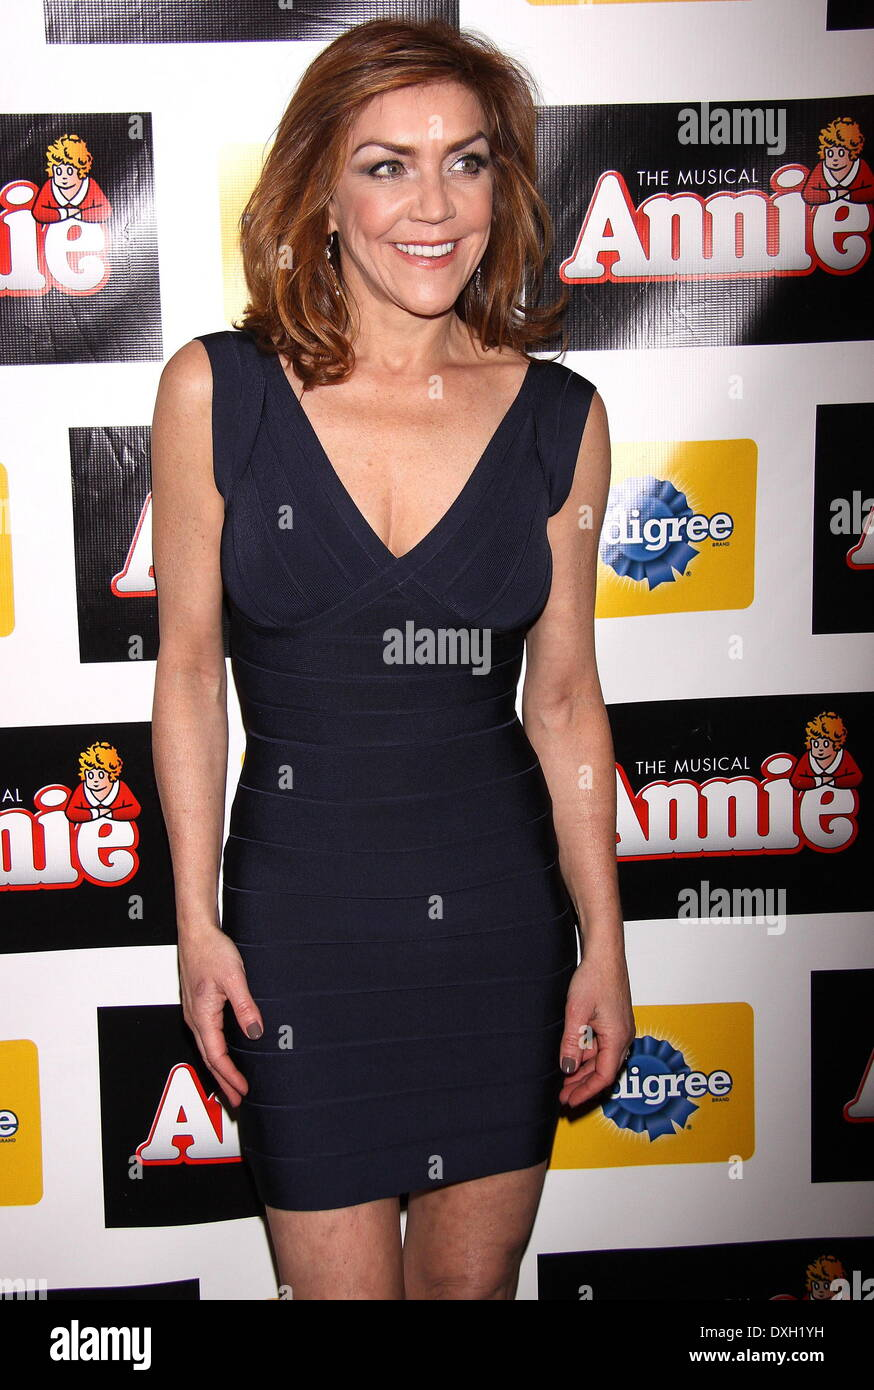 Andrea McArdle a change in me